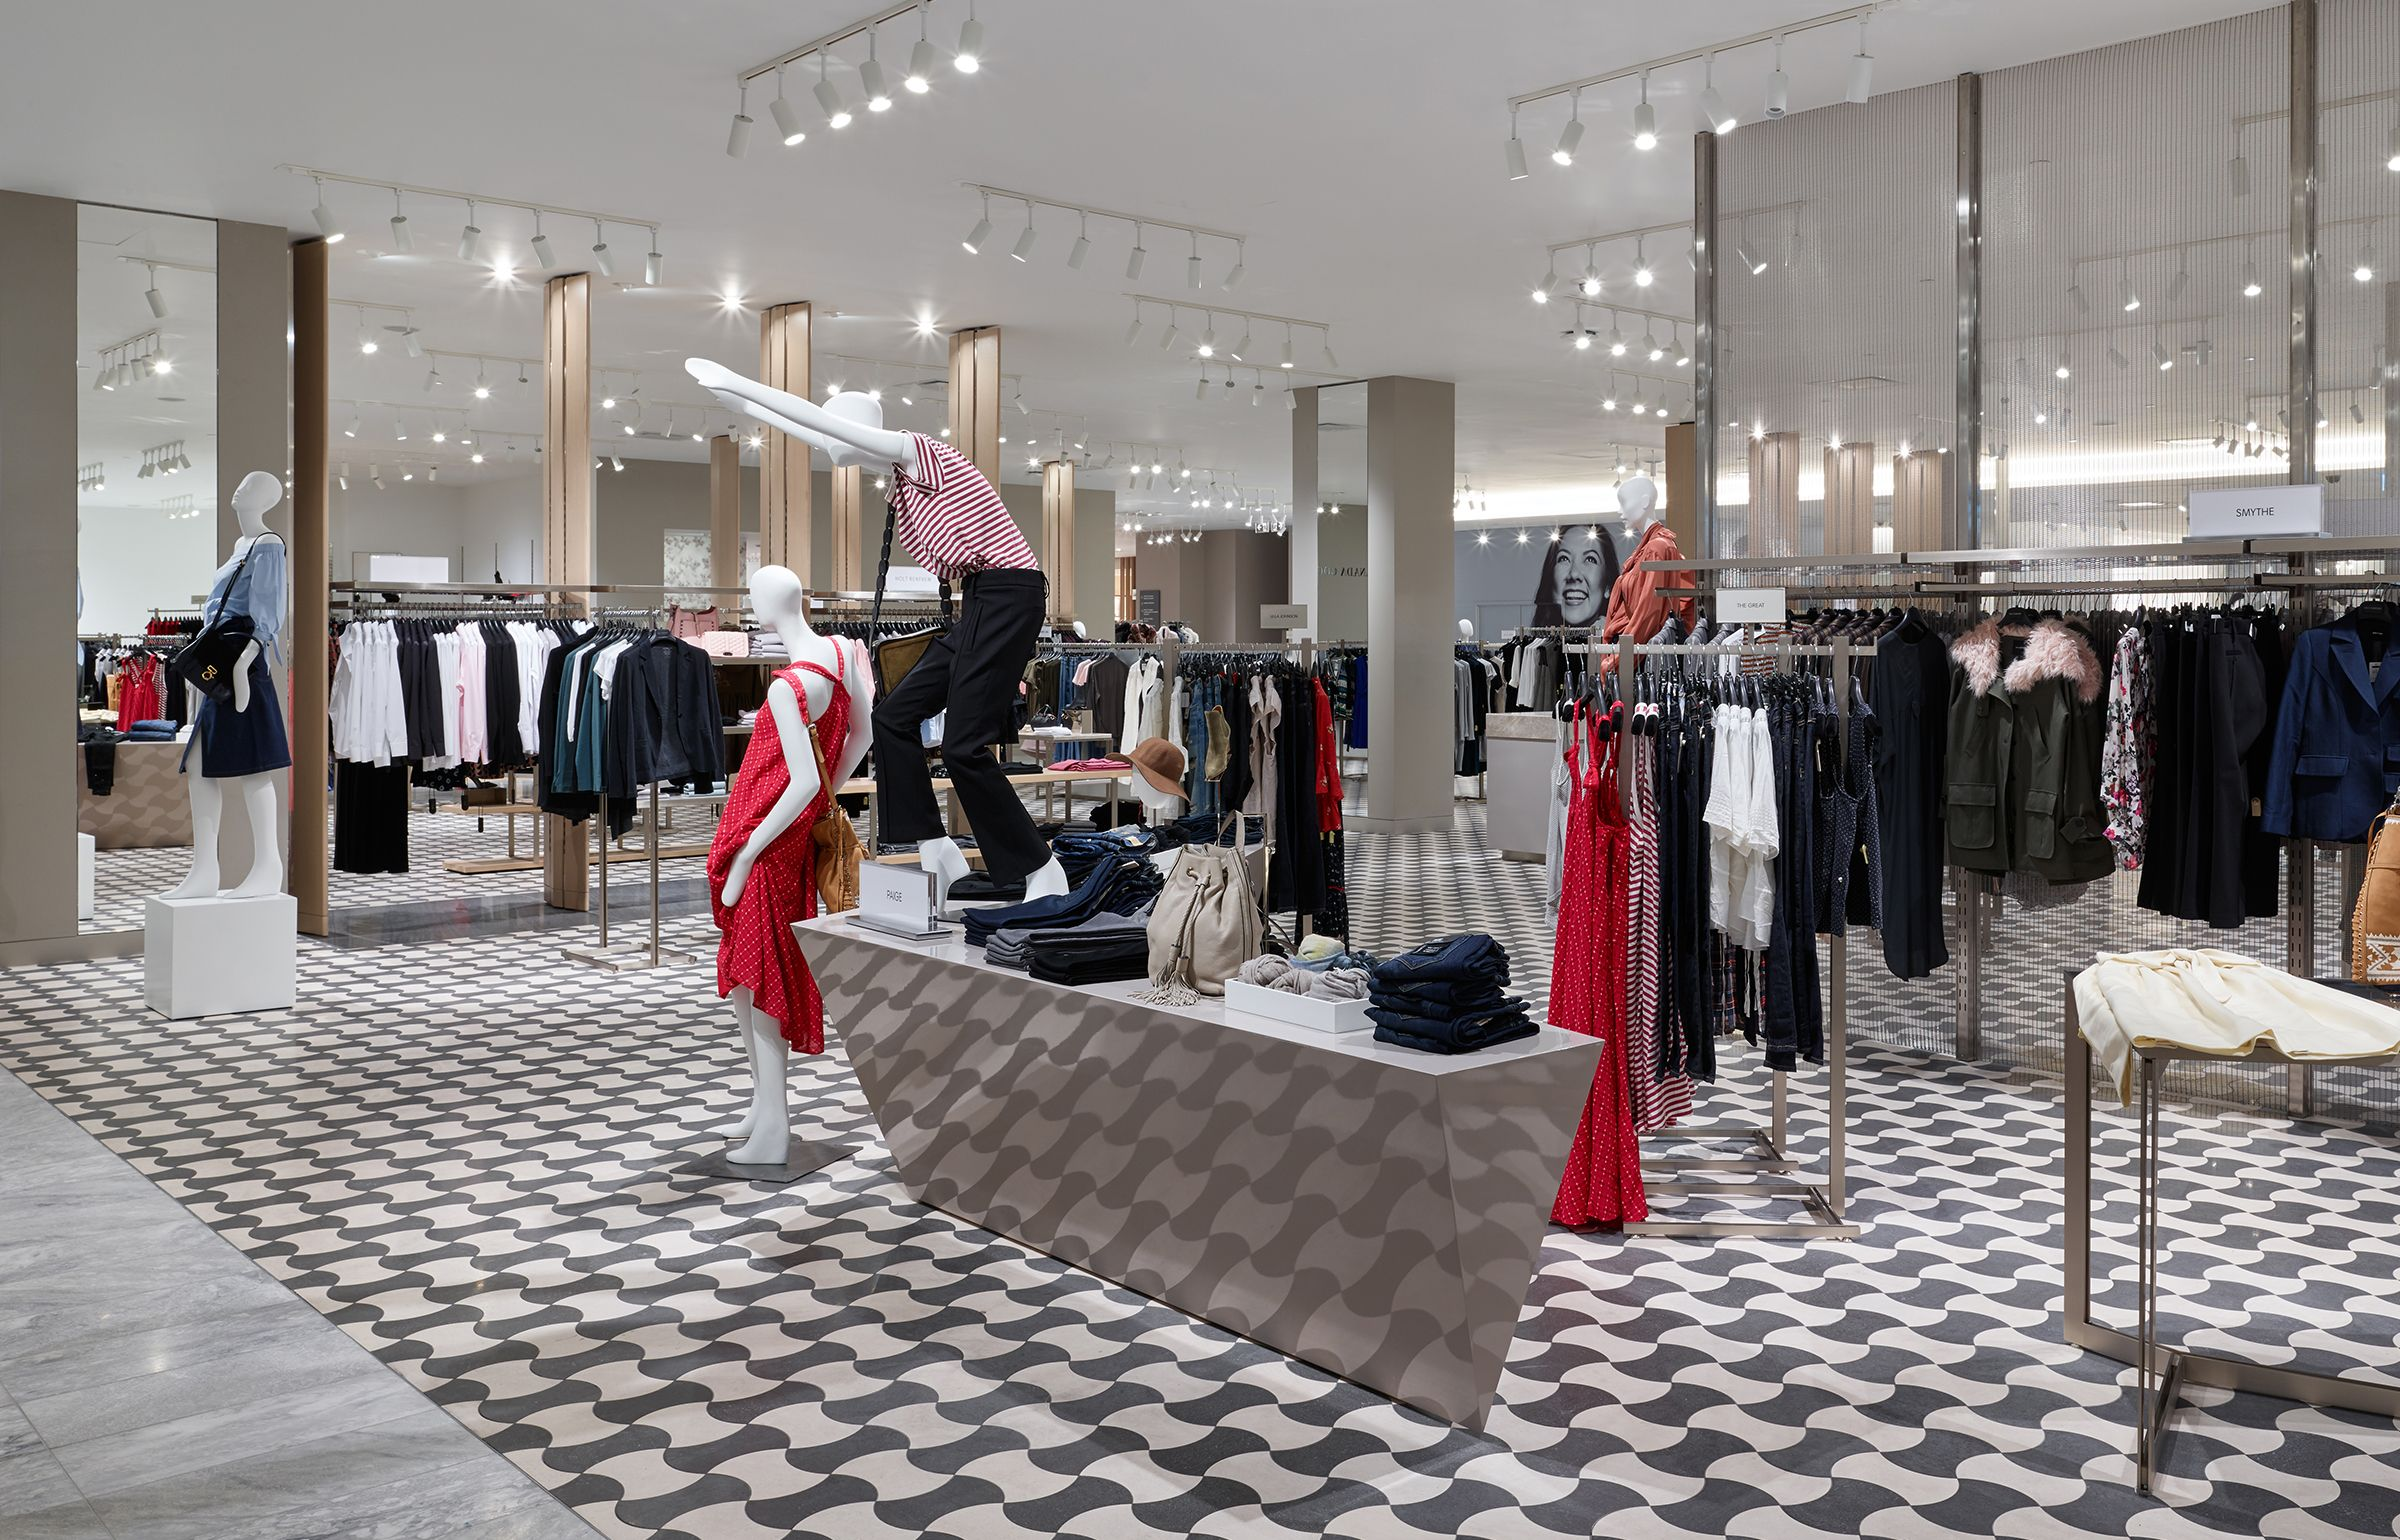 janson scuro | holt renfrew square one